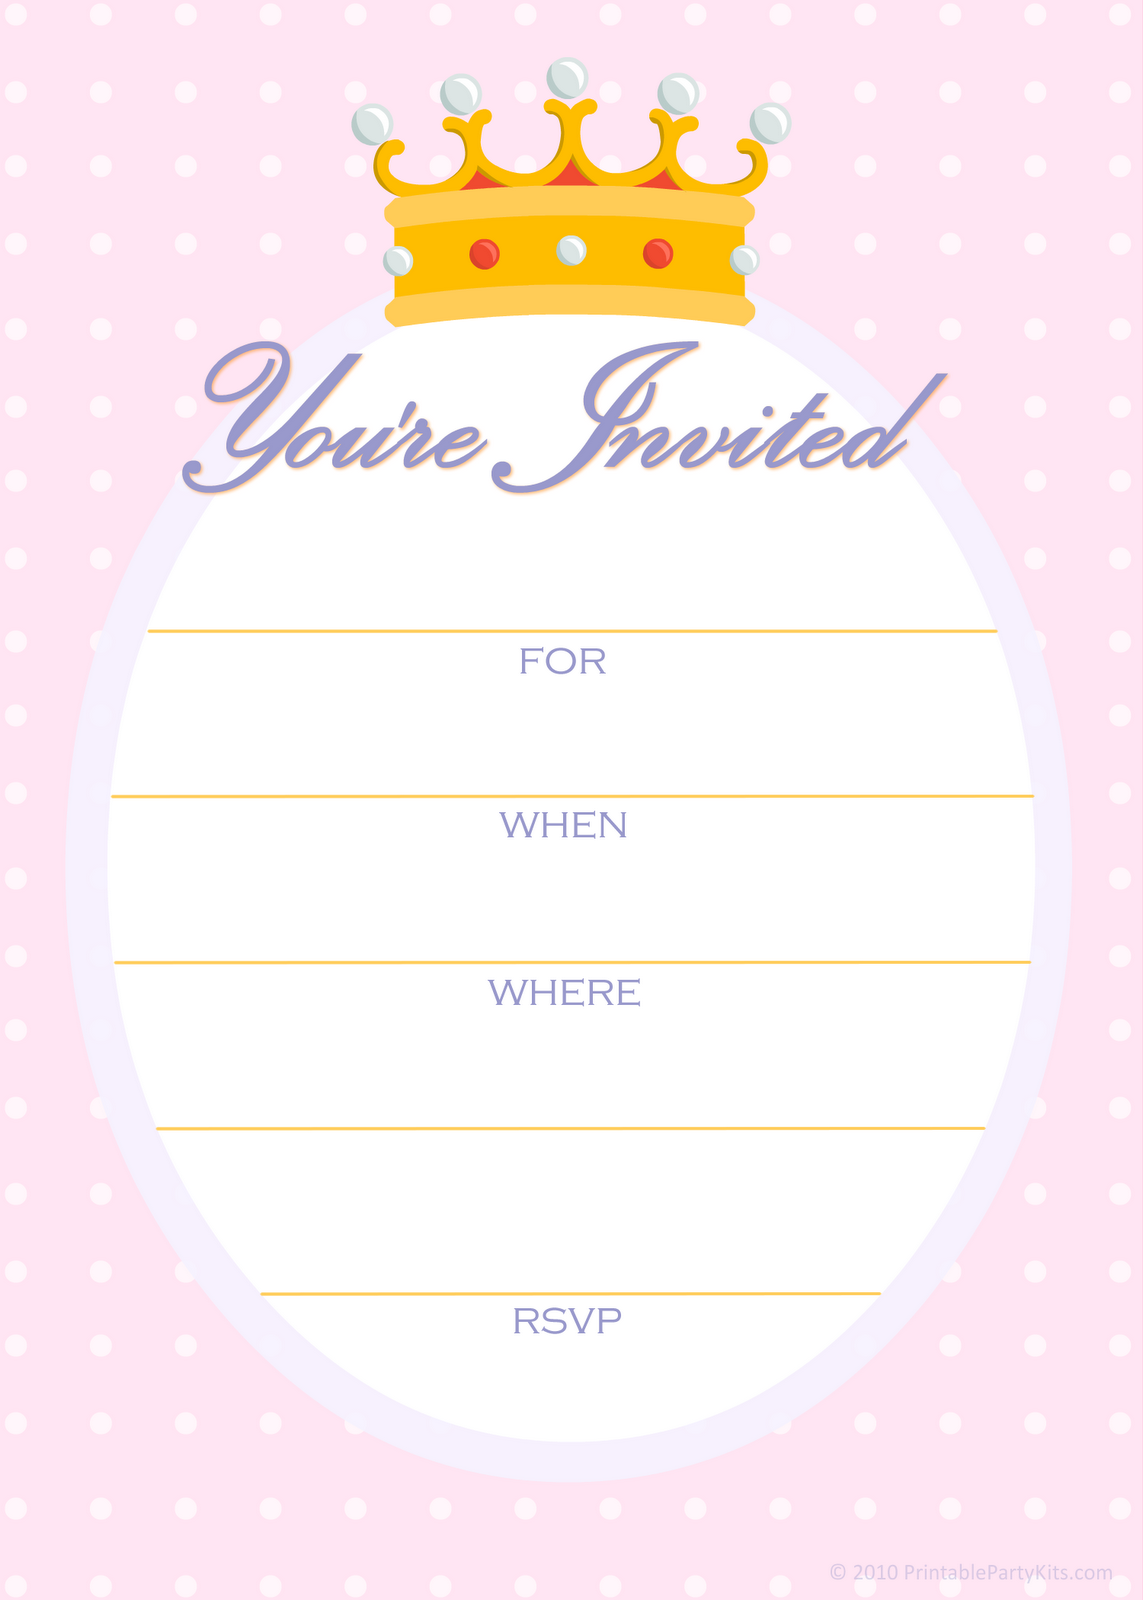 Free Printable Party Invitations Free Invitations For A Princess - Party invitation template: free printable birthday party invitation templates